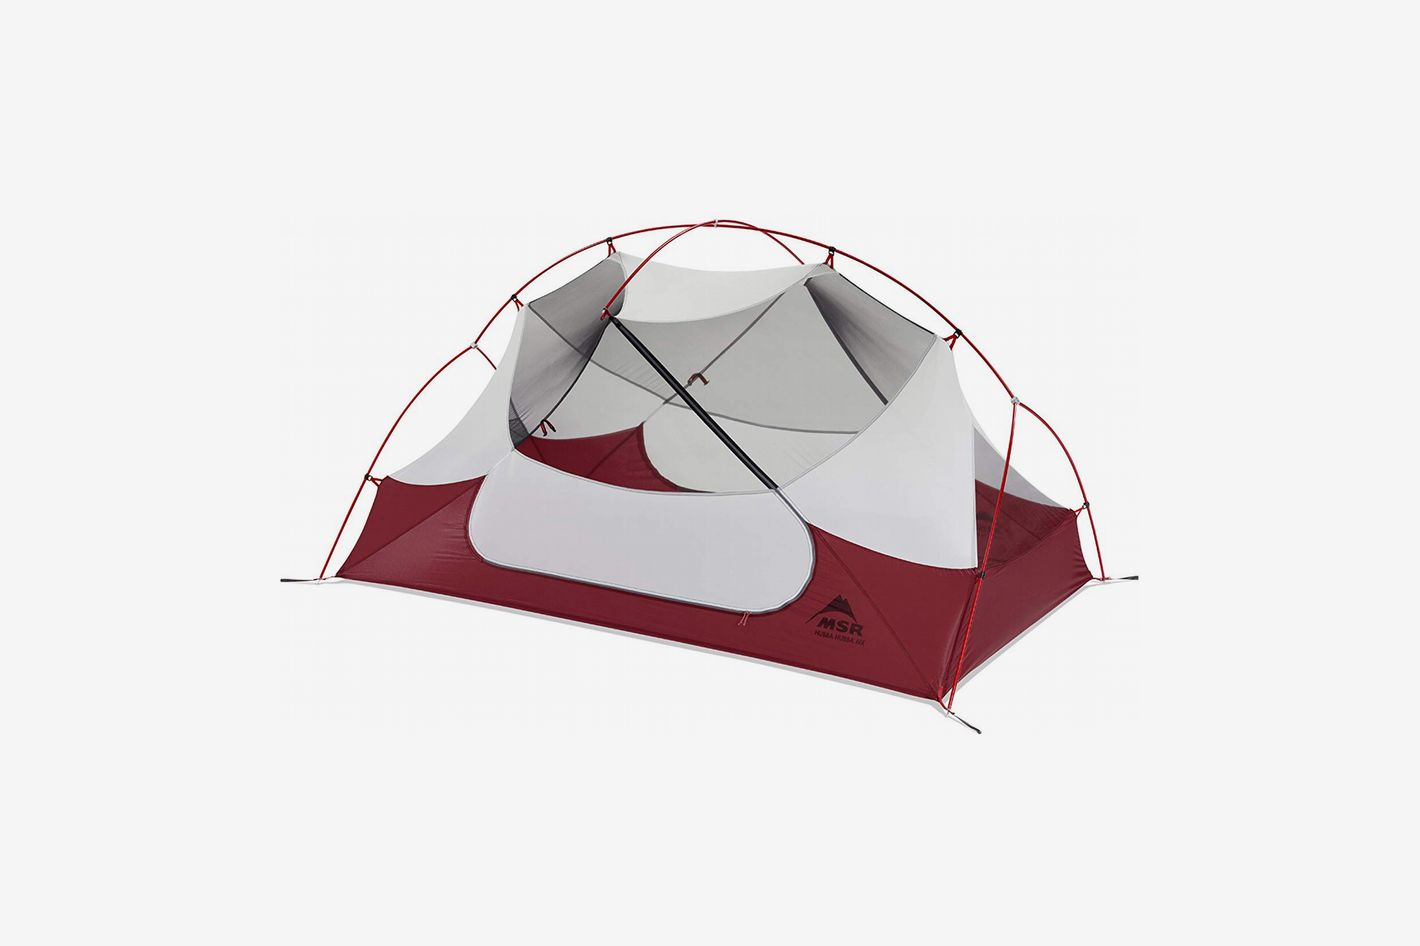 MSR Hubba Hubba NX Two-Person Lightweight Backpacking Tent